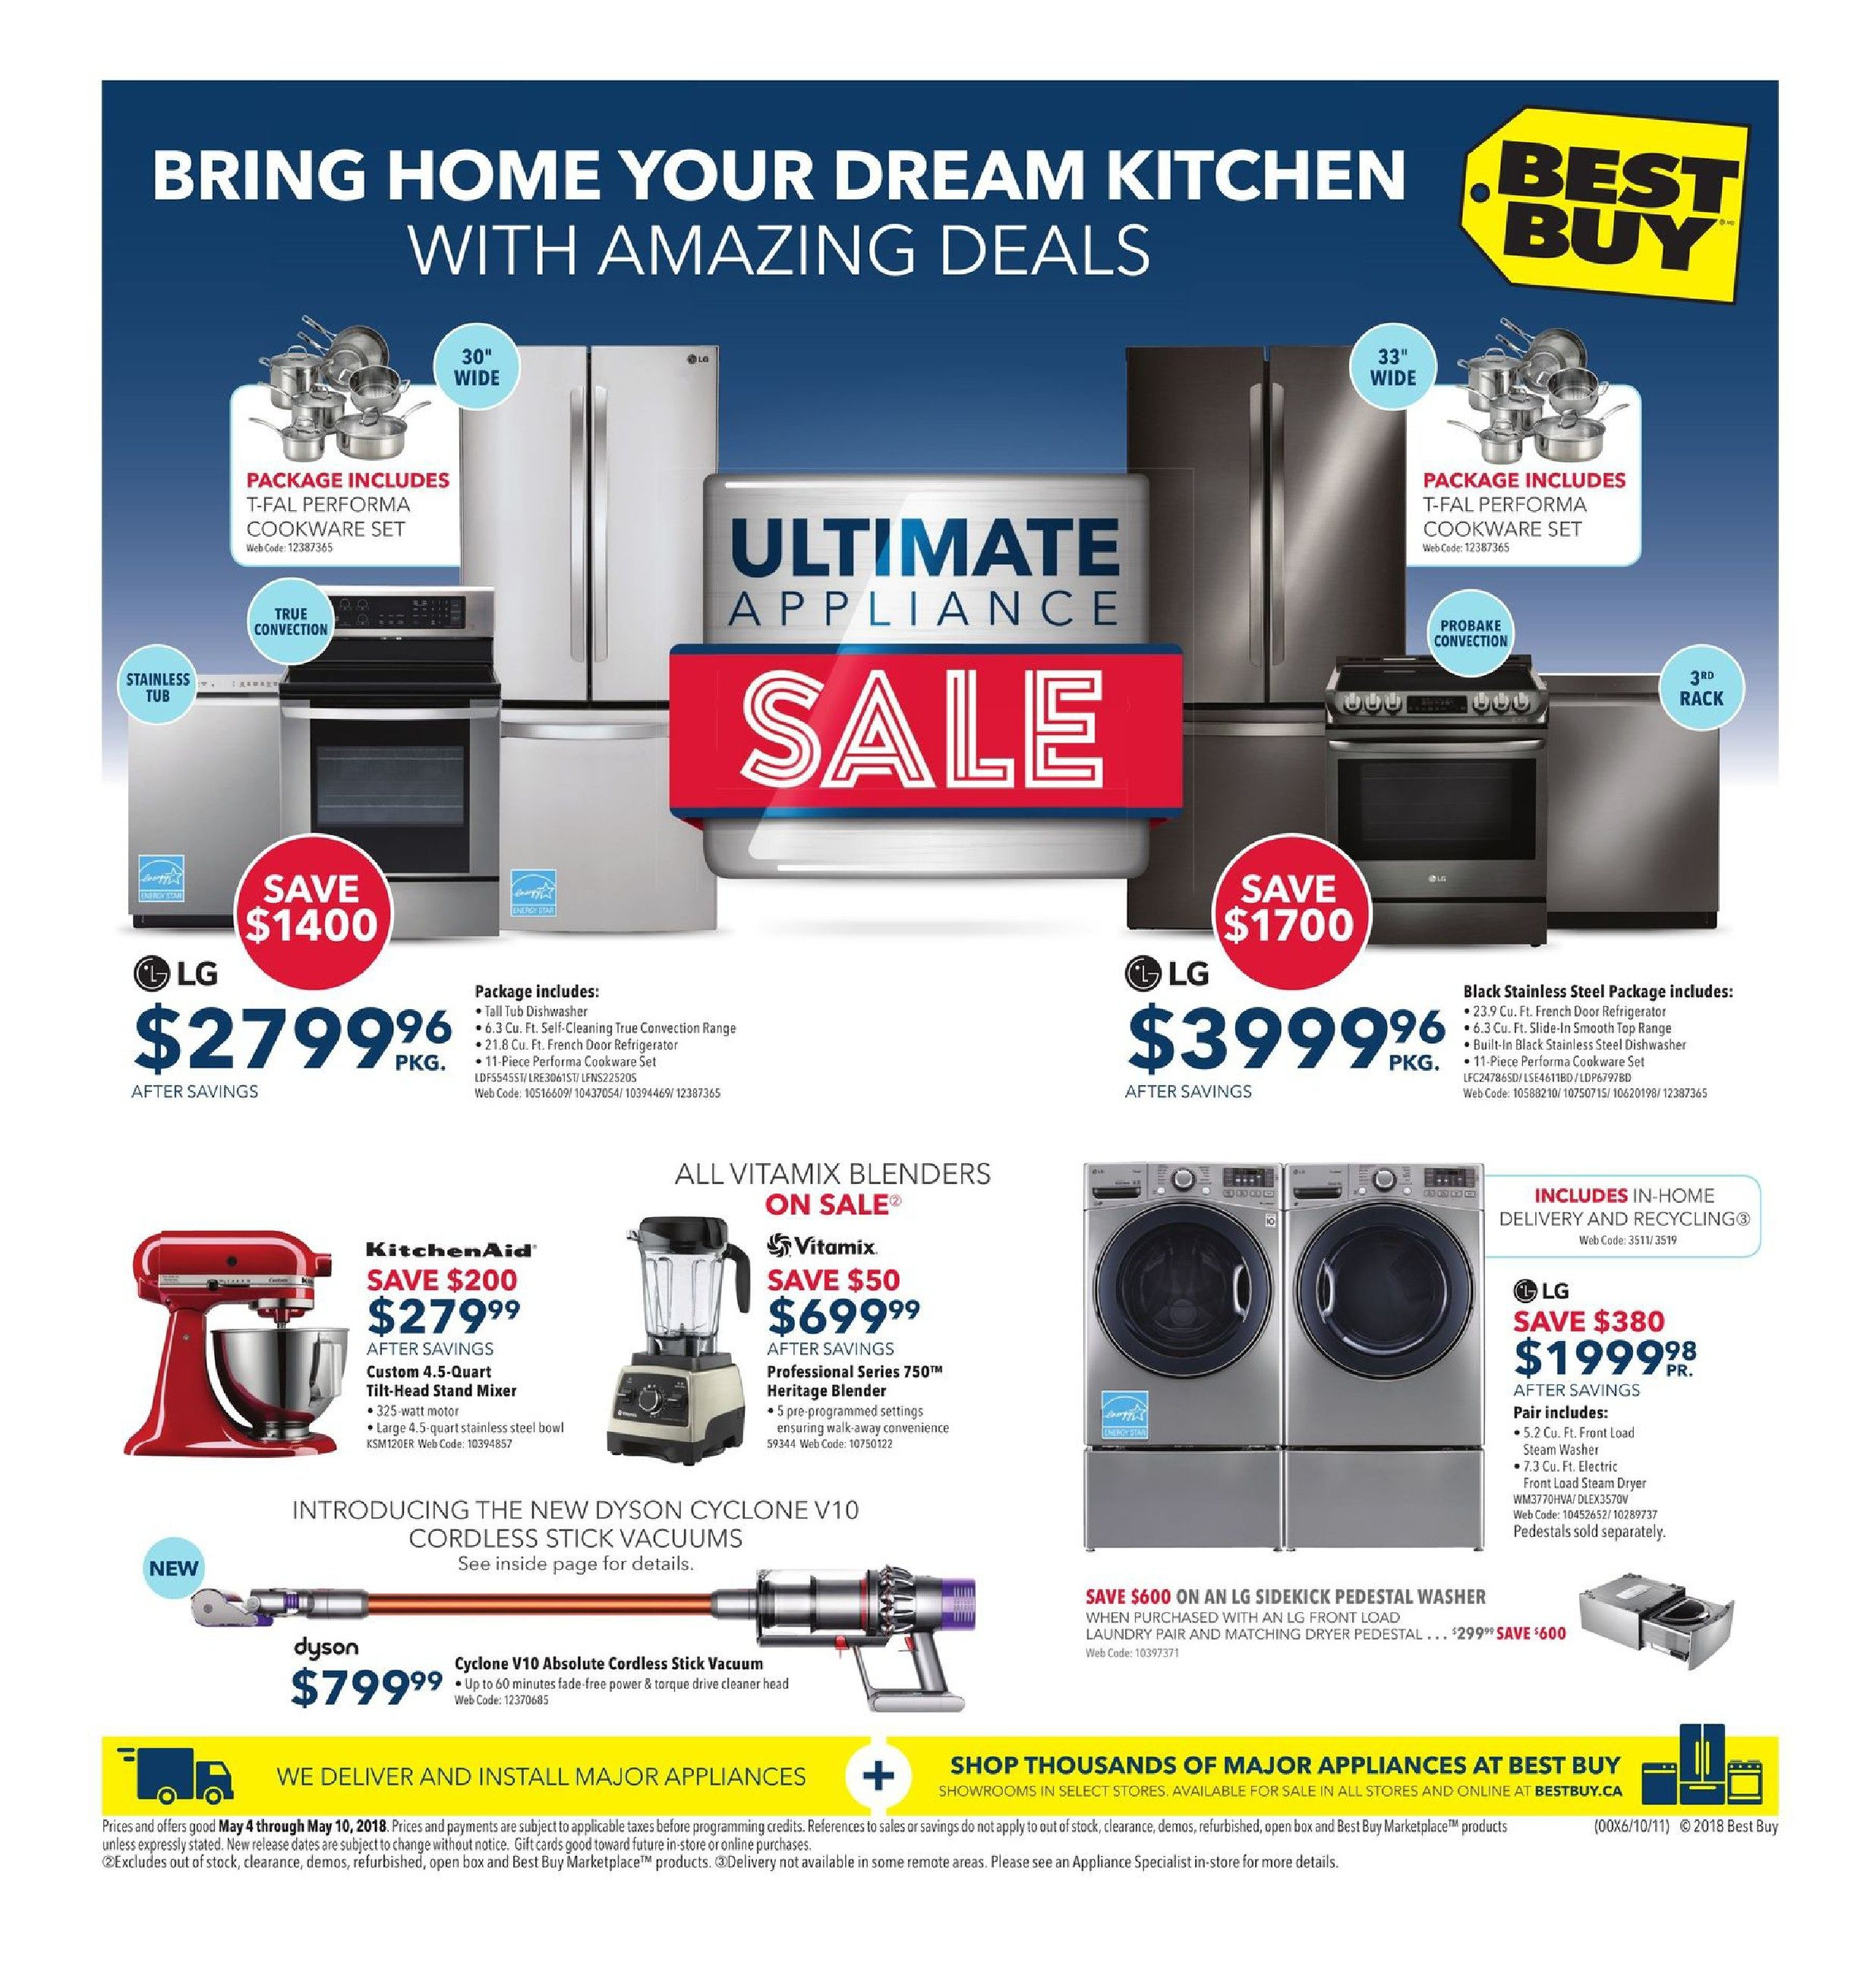 Best Buy Weekly Flyer Ultimate Appliance Sale May 4 3wrgb Led Driver Ver11 With Cmos Youtube 10